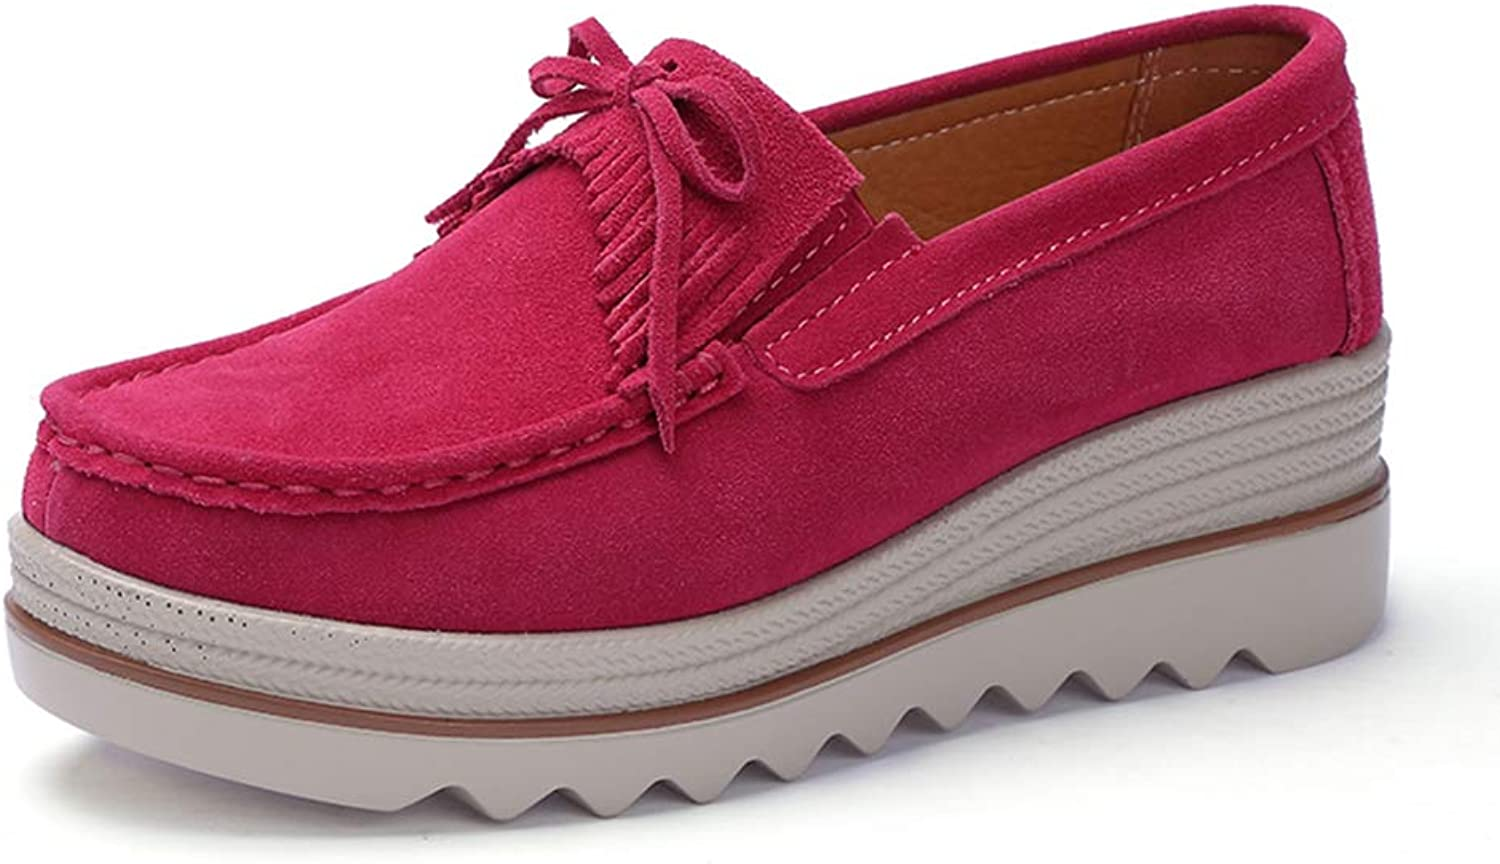 Ruiatoo Women Platform Slip On Loafers Comfort Genuine Suede with Tassel Wedge shoes Low Top Moccasins pink Red 36